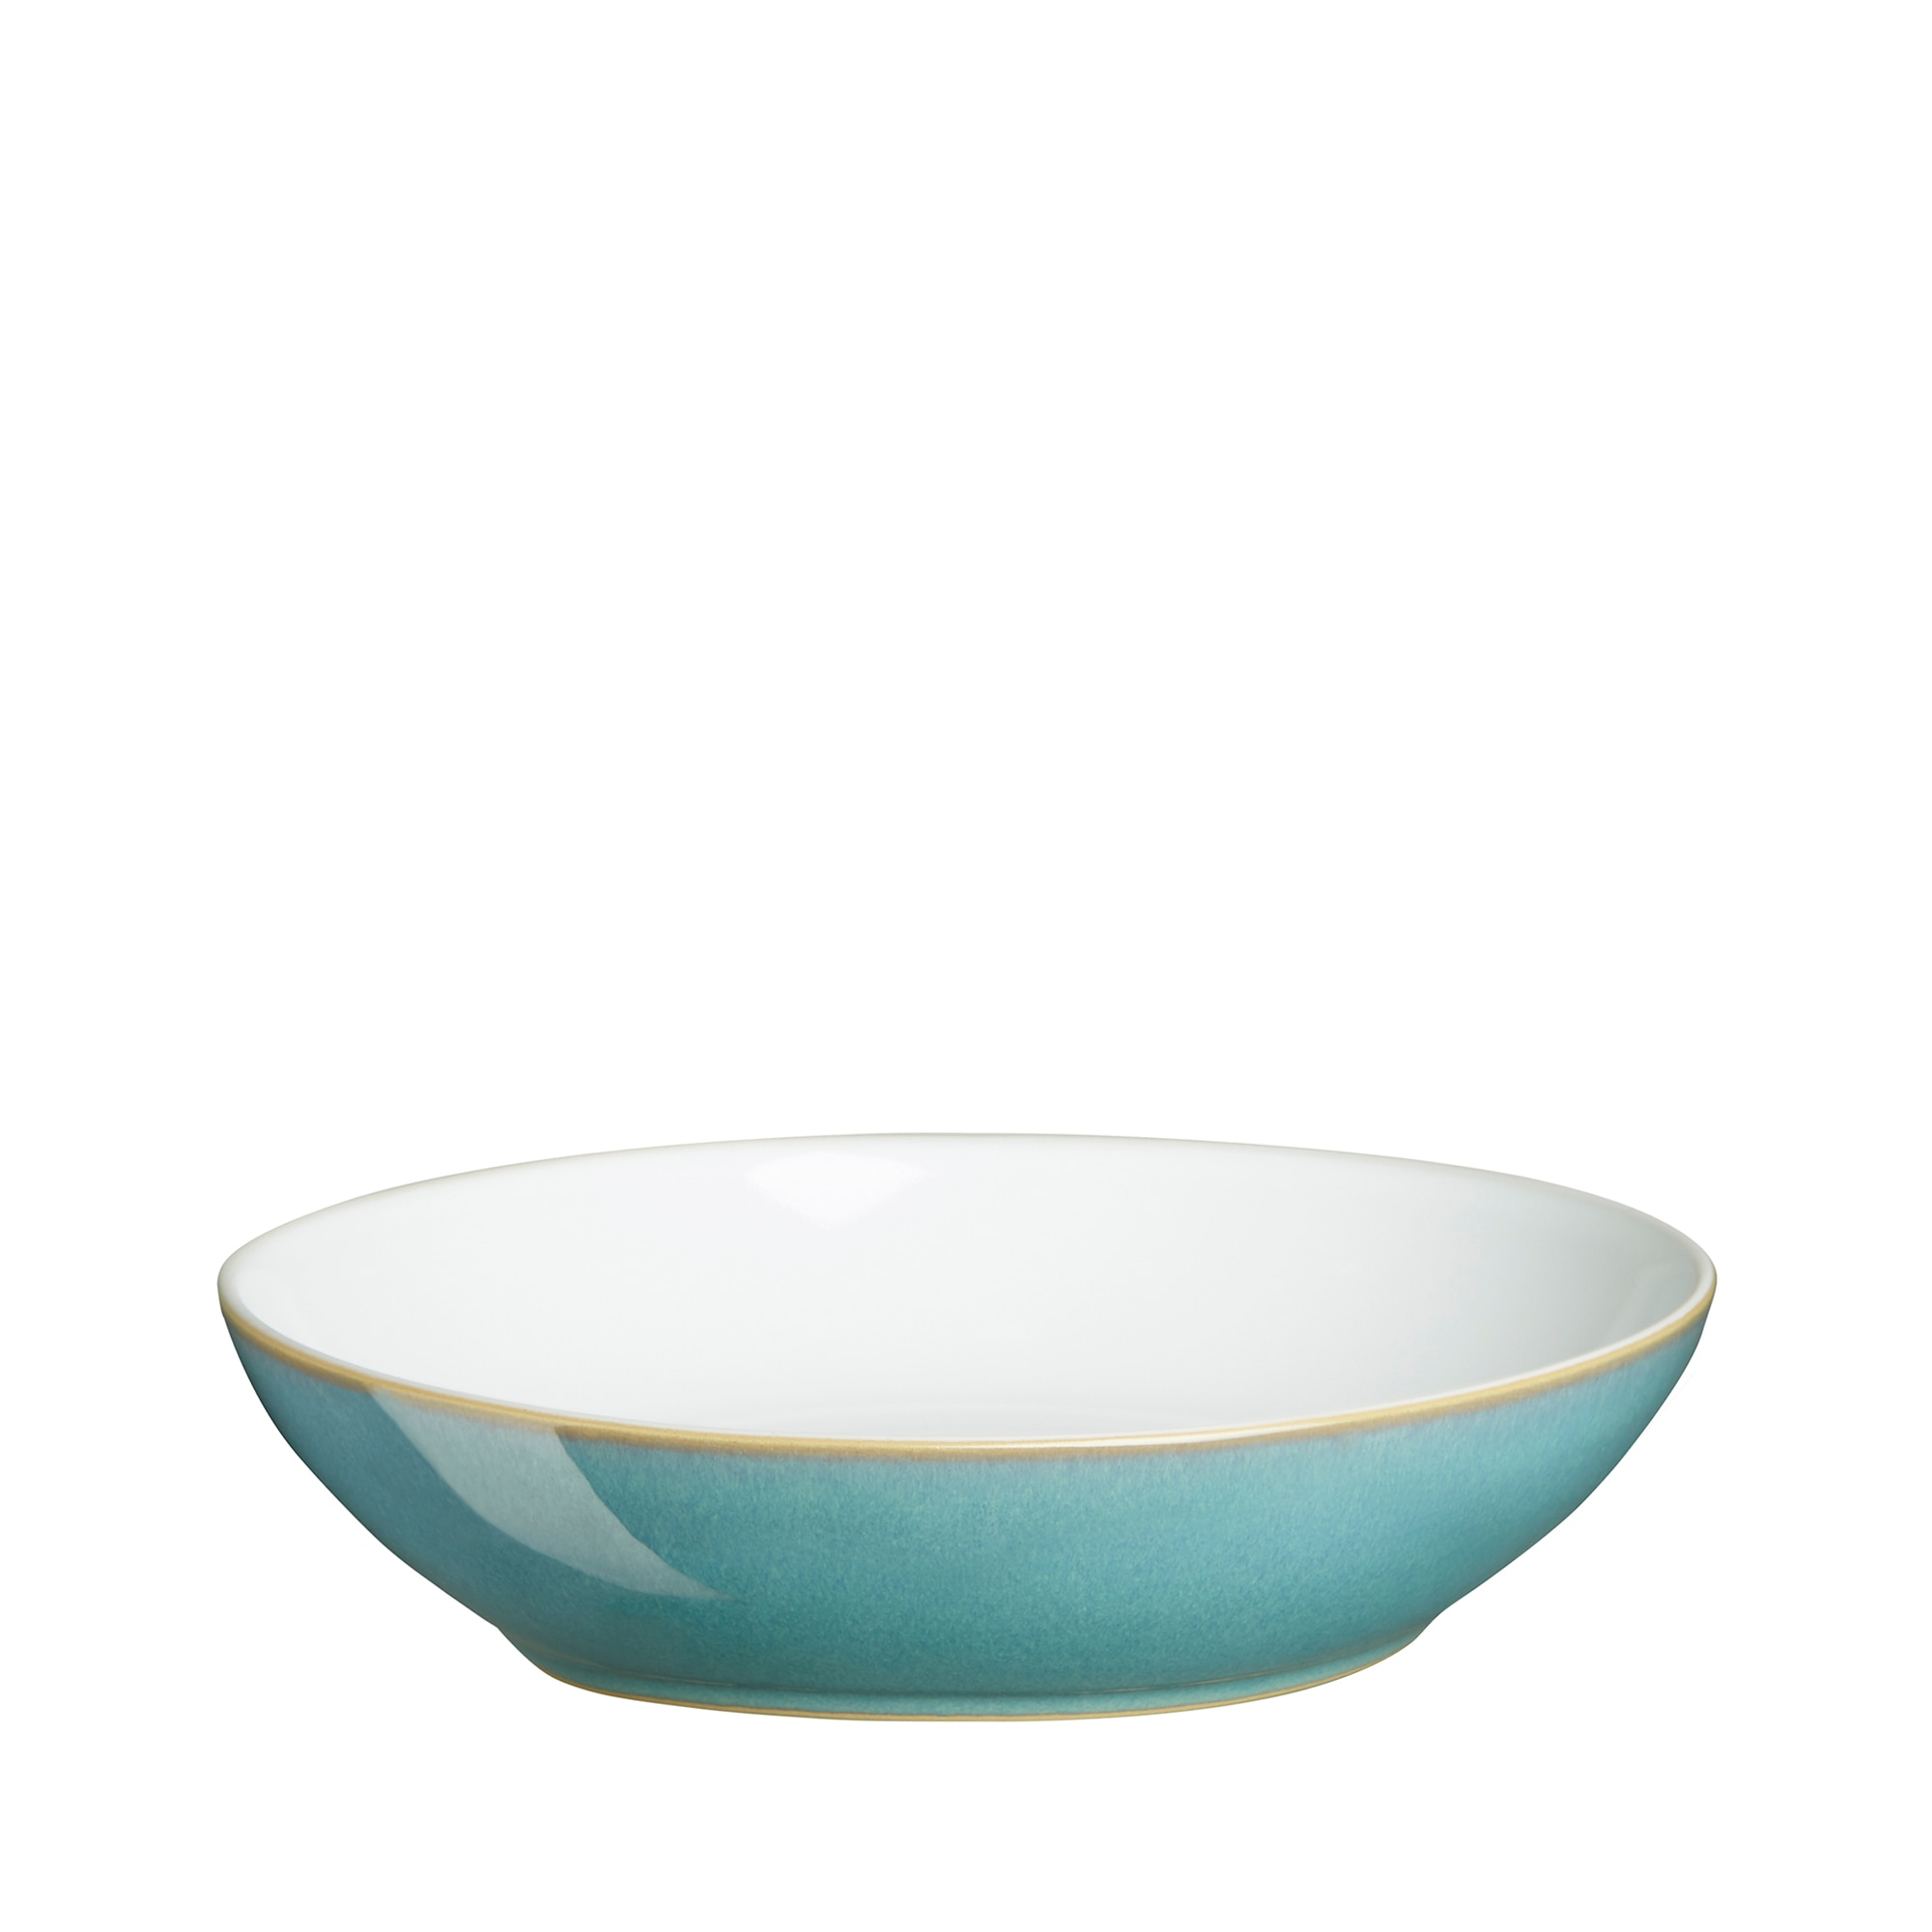 Compare prices for Denby Azure Pasta Bowl